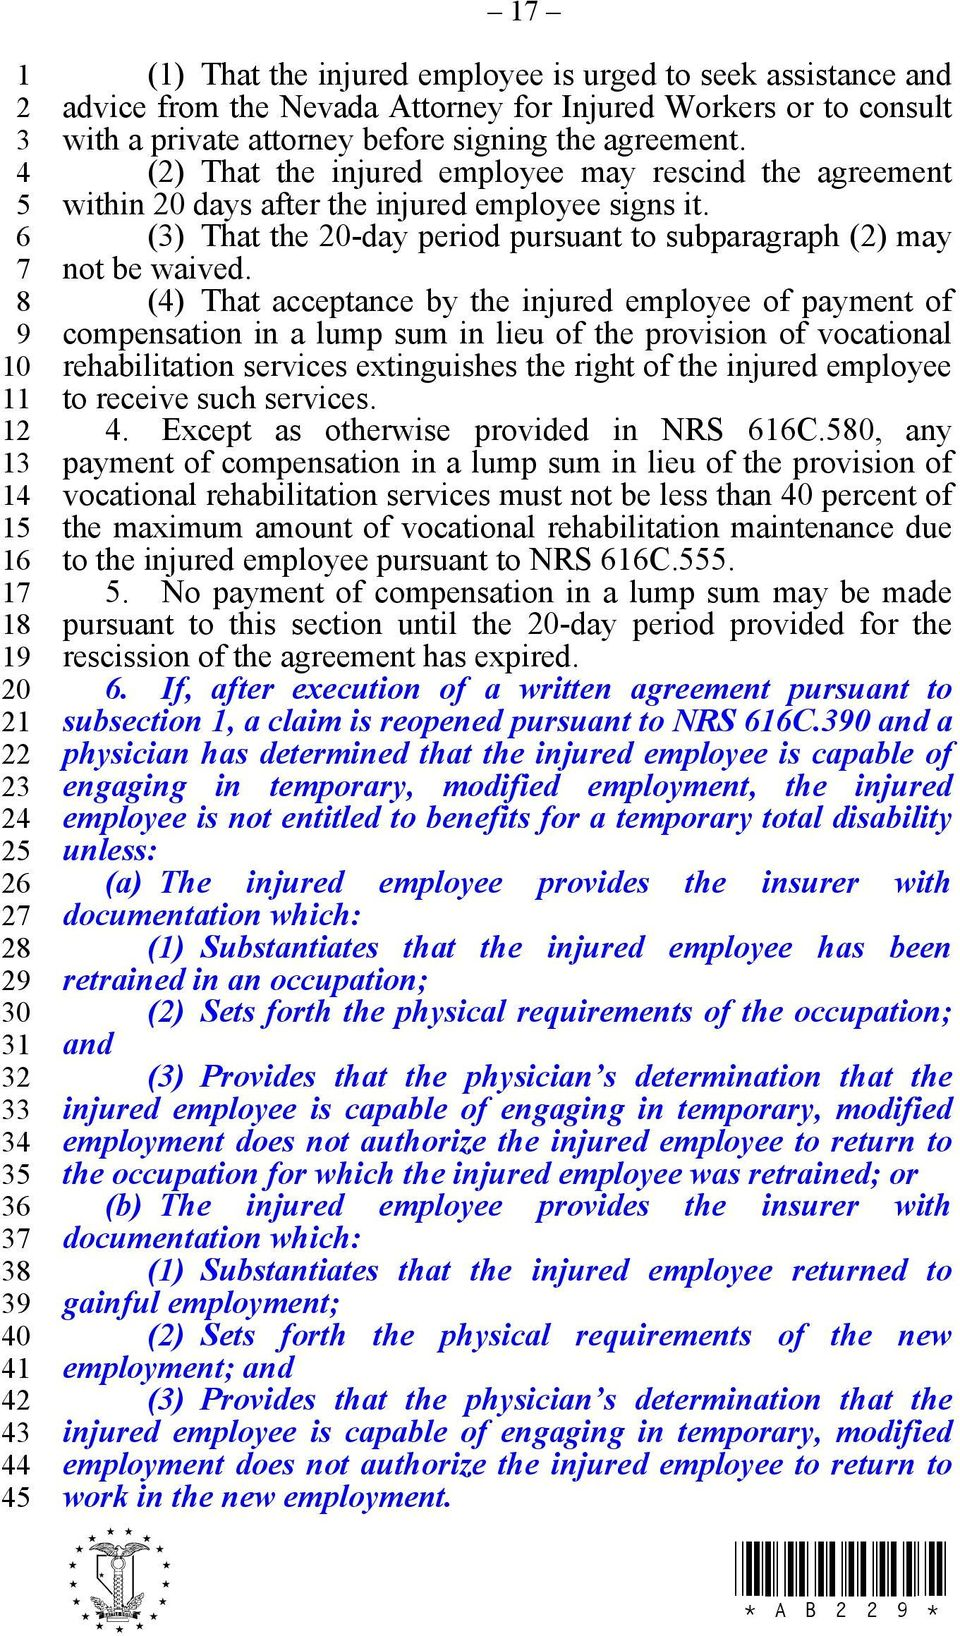 () That acceptance by the injured employee of payment of compensation in a lump sum in lieu of the provision of vocational rehabilitation services extinguishes the right of the injured employee to